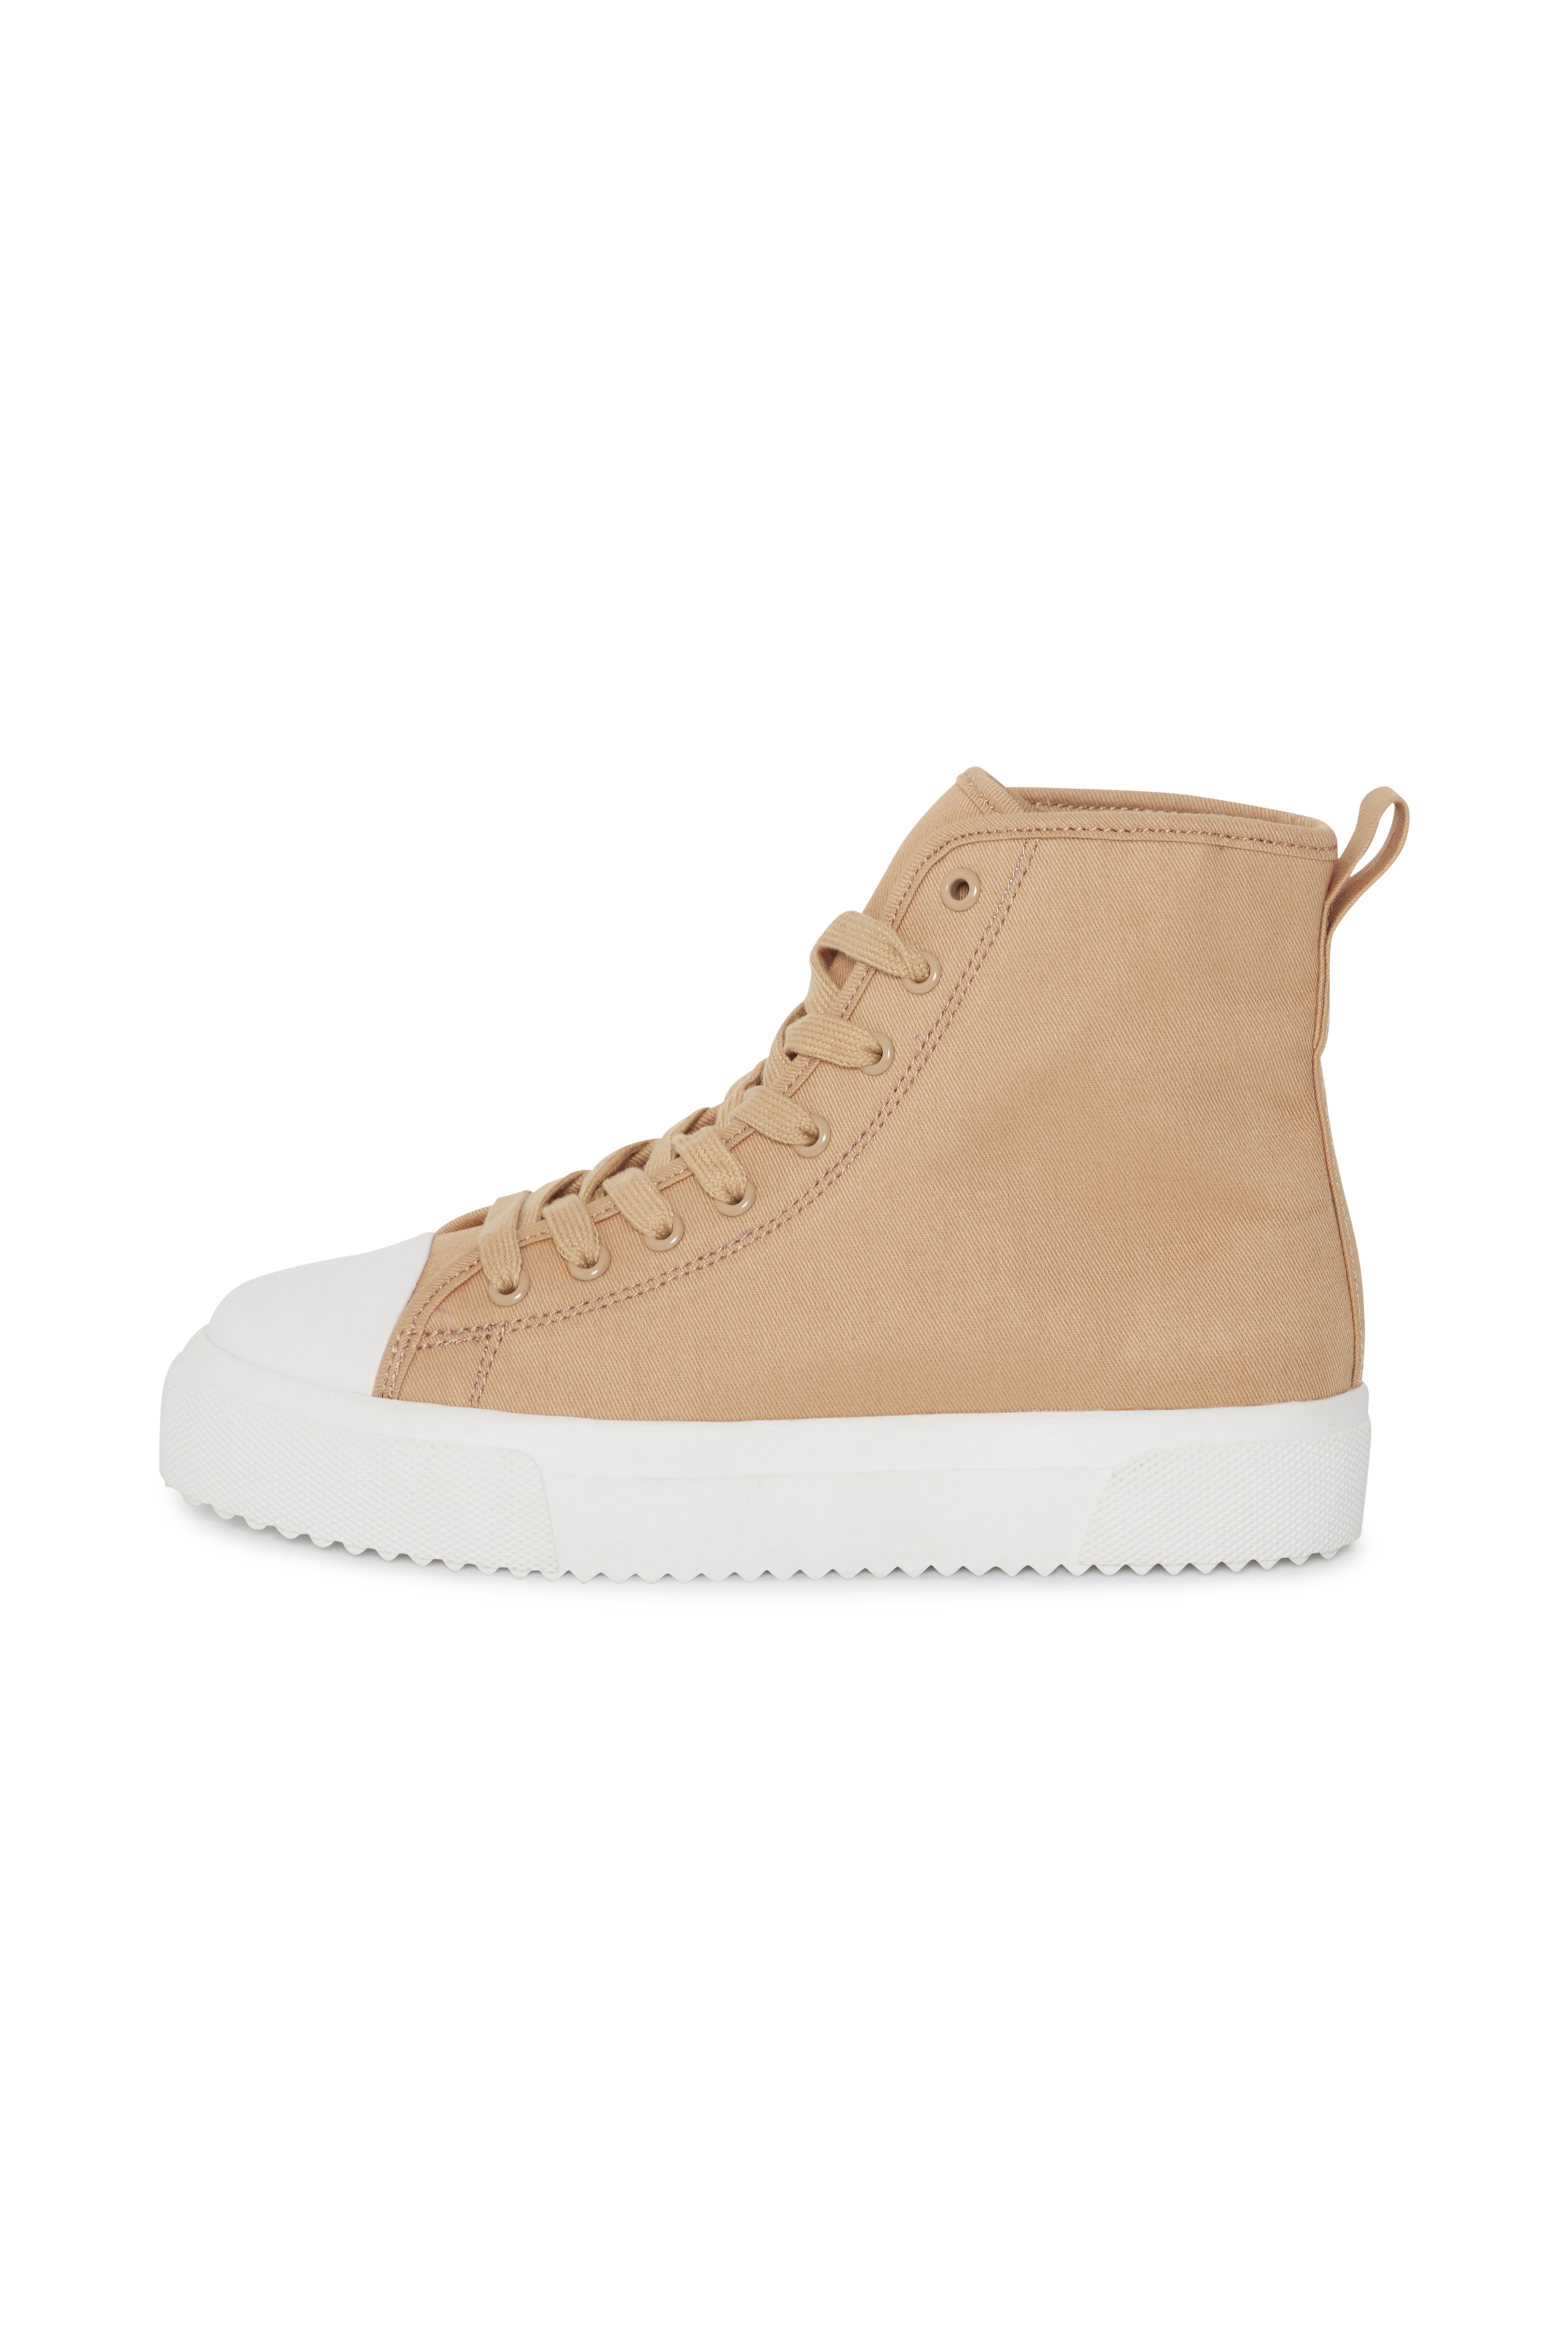 Image of   Ichi - accessories Dame Sneakers - Sand